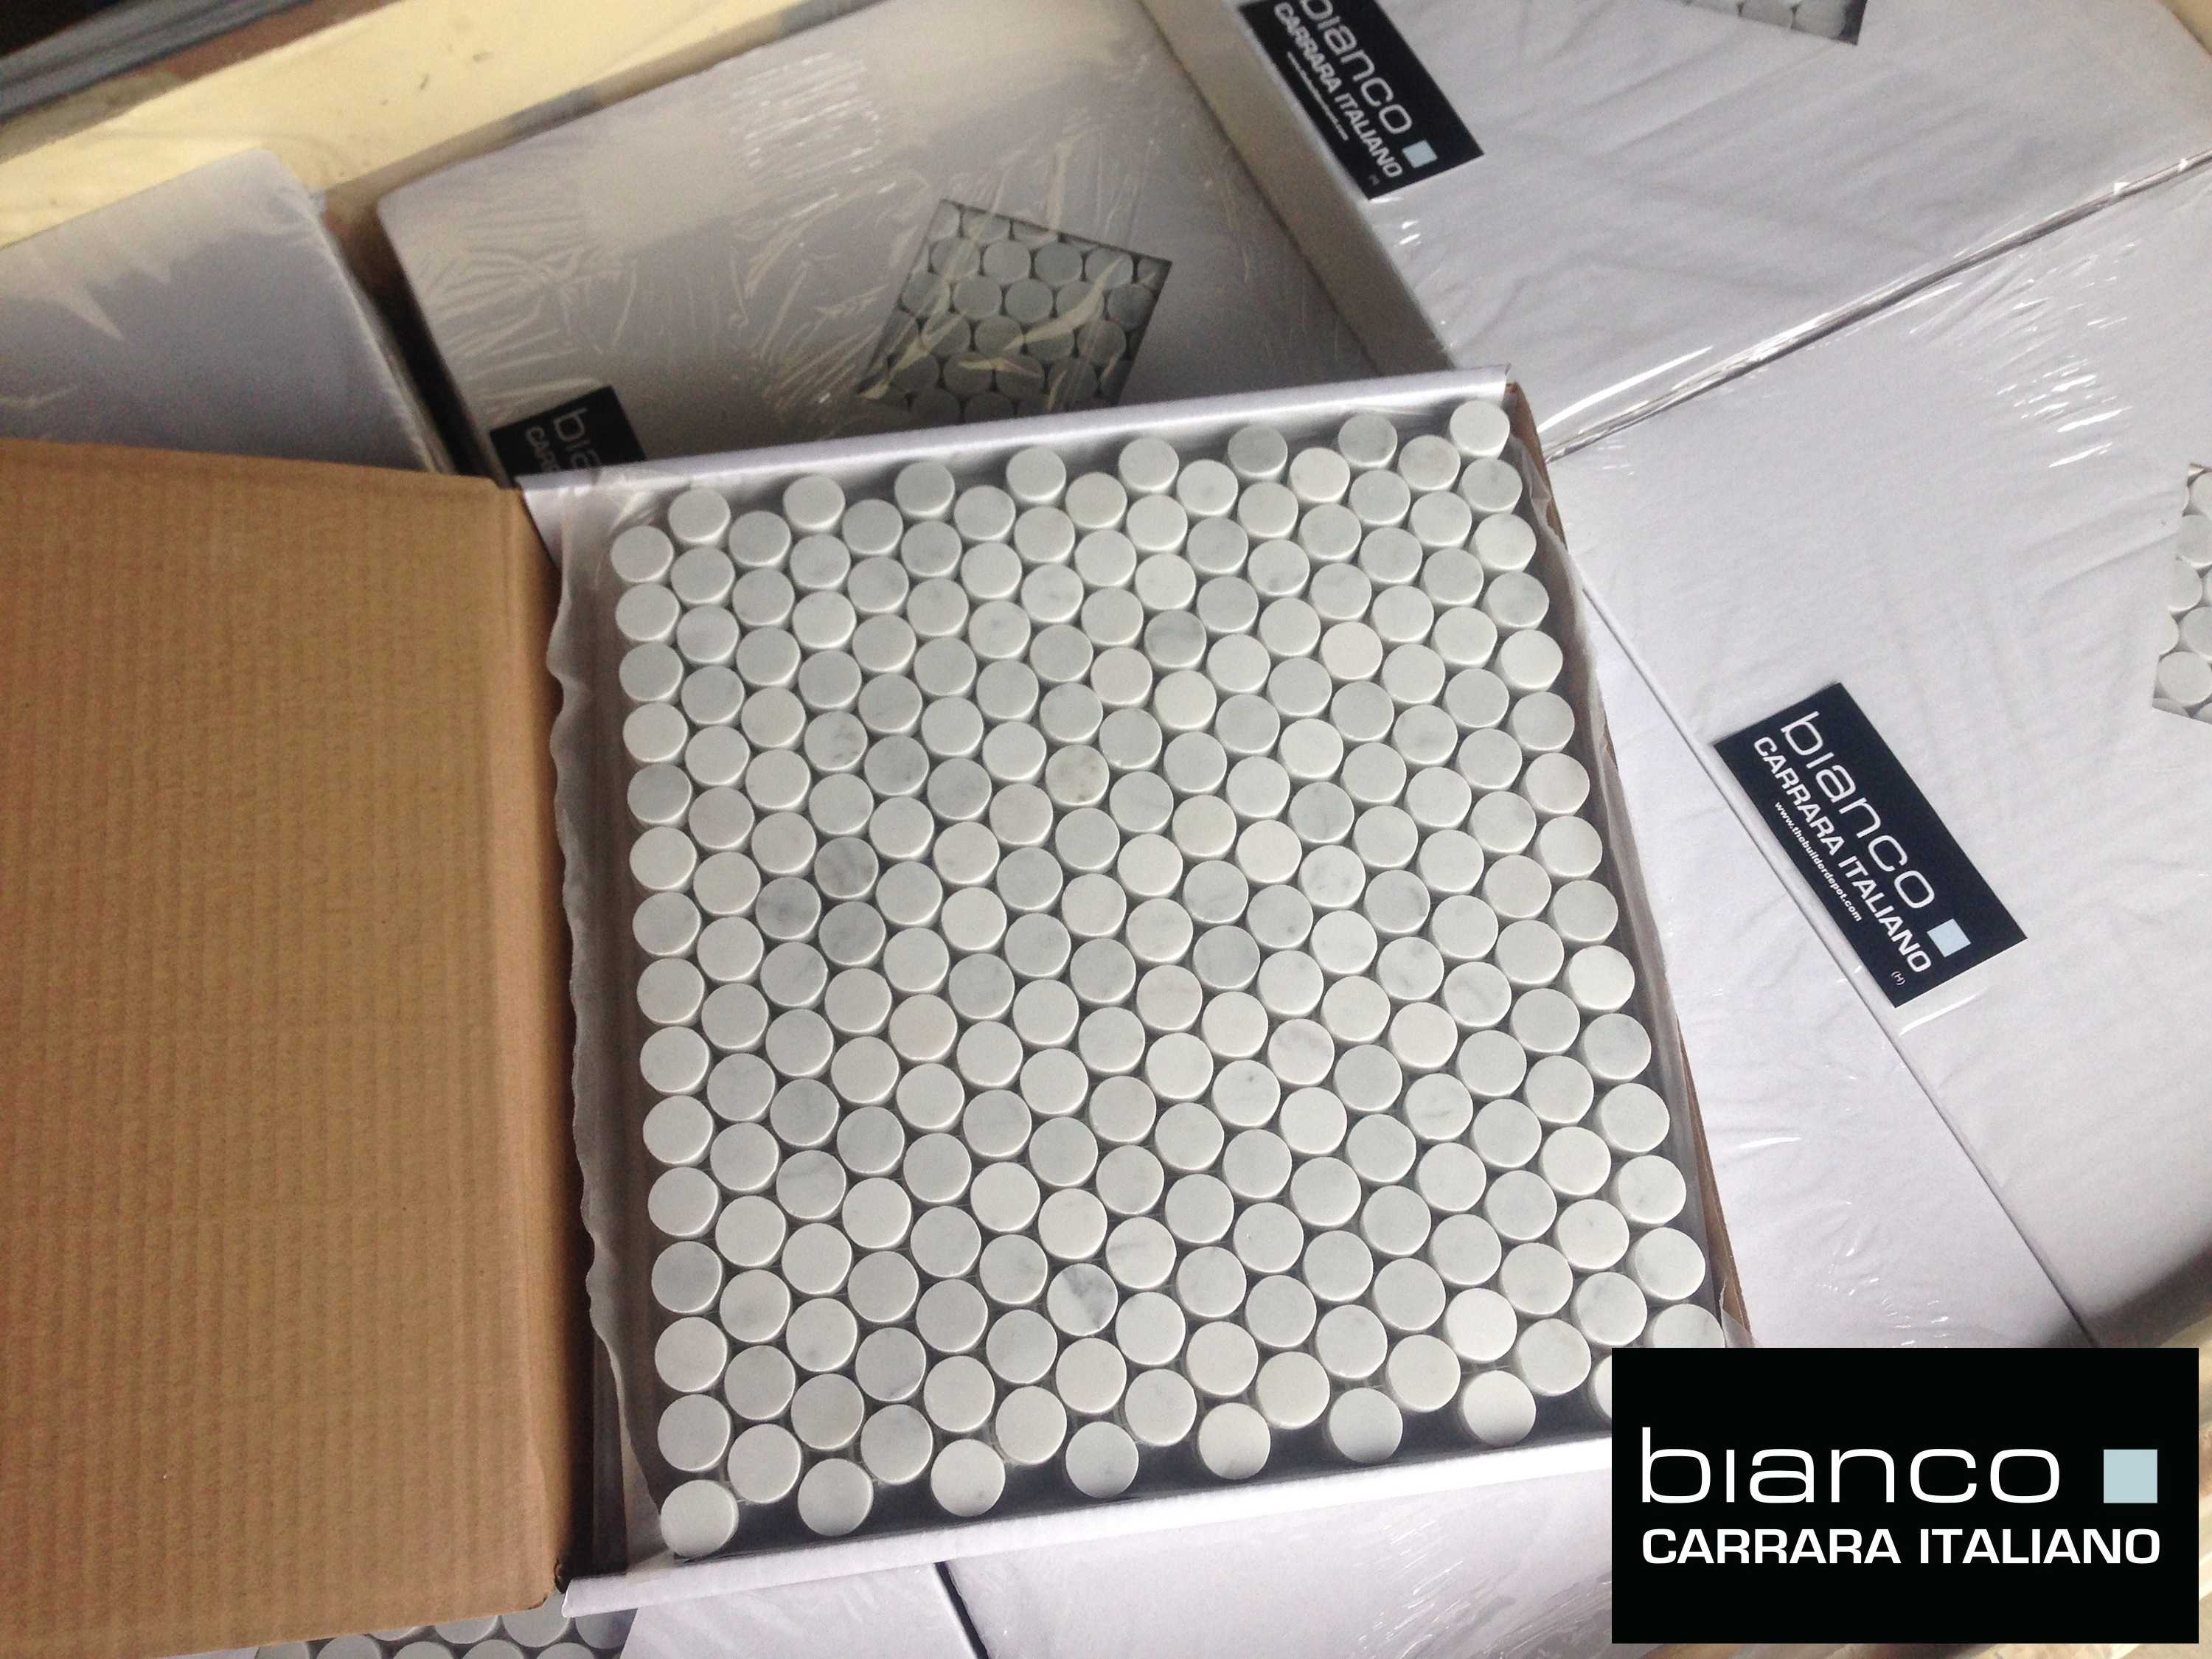 Bianco marble tile the builder depot blog carrara bianco 34 penny rounds arrive dailygadgetfo Choice Image